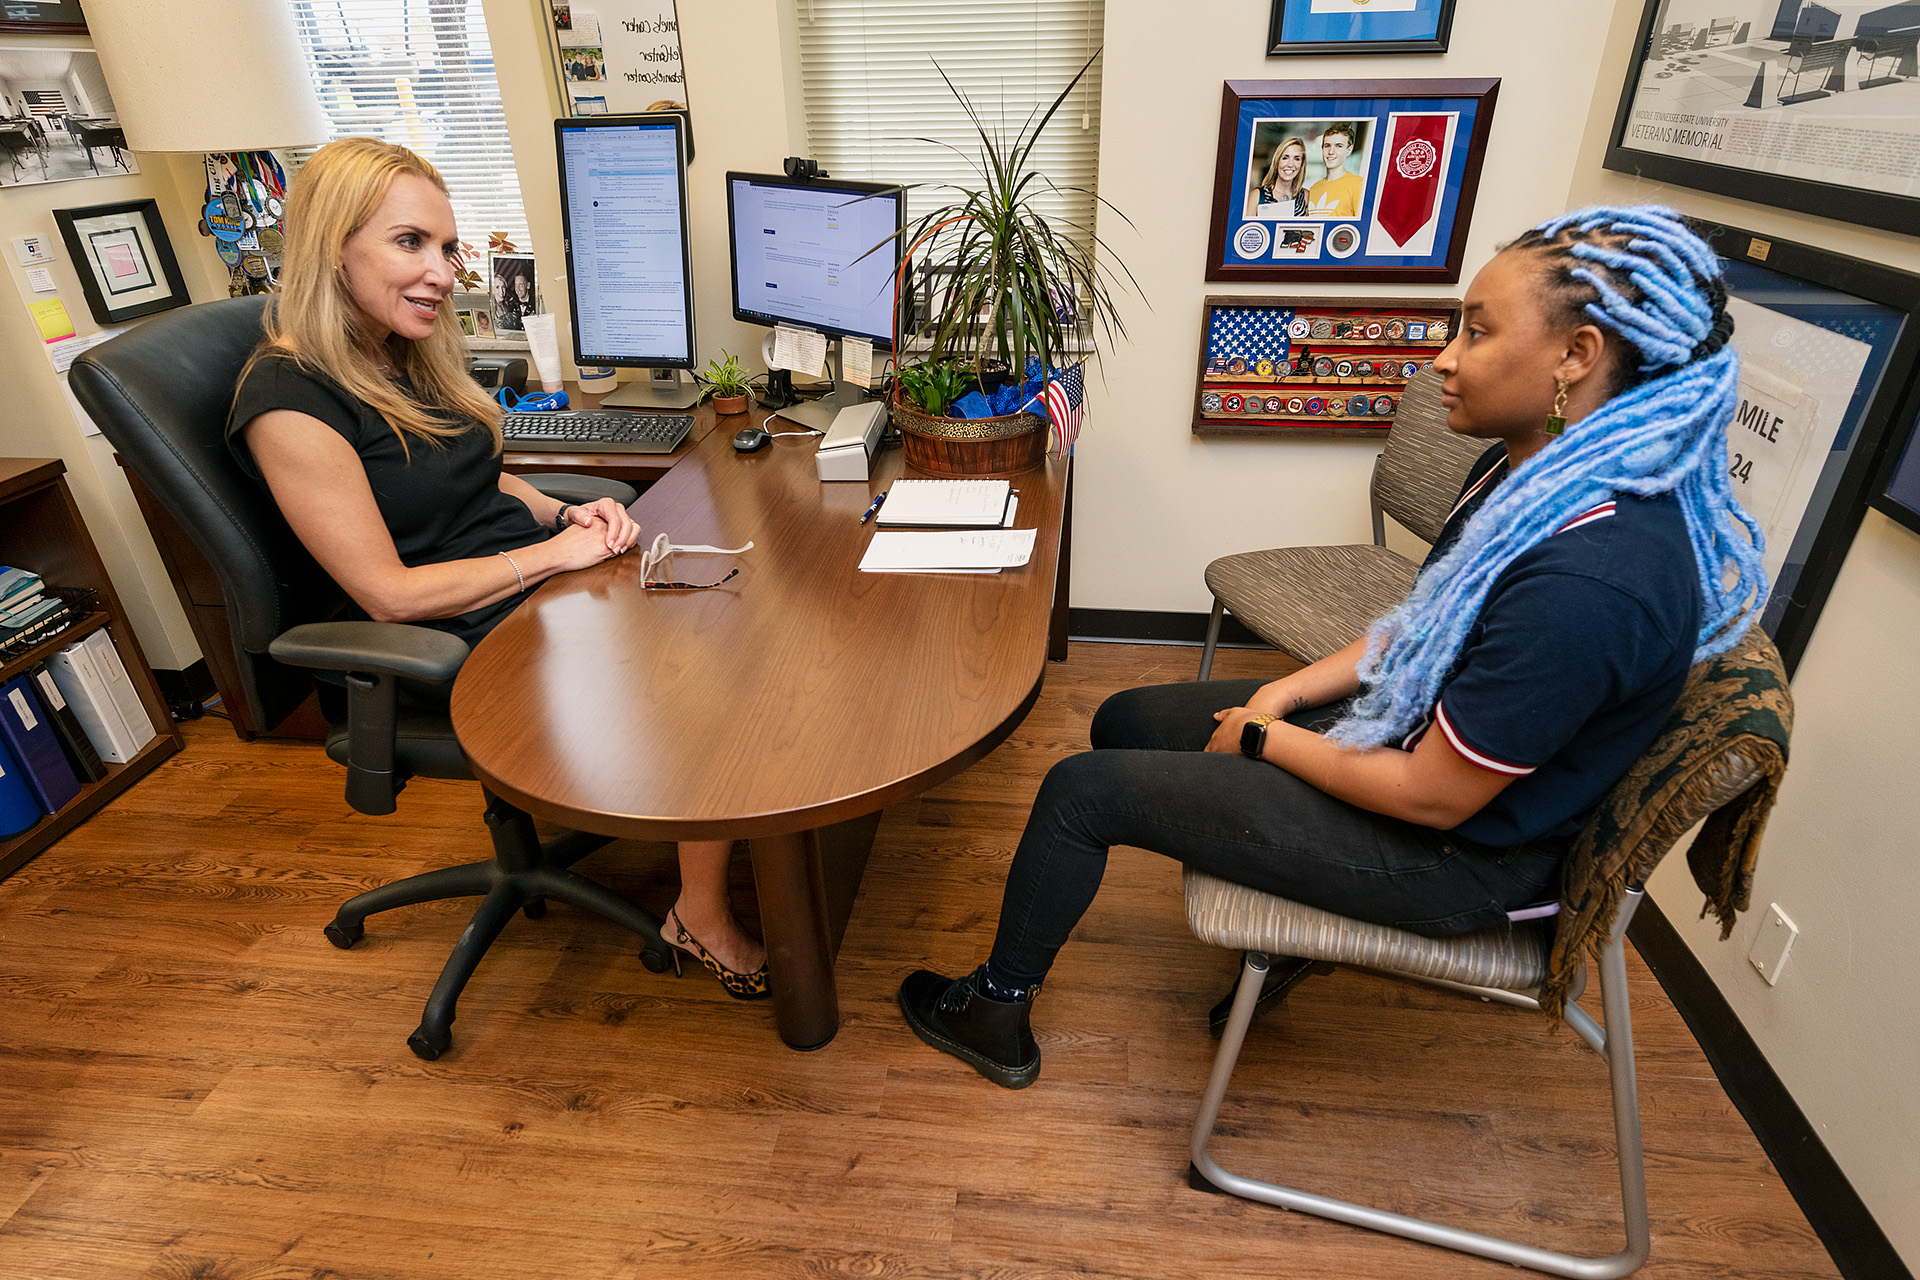 Keyann Reaves, 2018 alumna, Clinical Trial Research Assistant, Vanderbilt University Medical Center, General's Fund Recipient with Dr. Hilary Miller. (Photo: Andy Heidt)